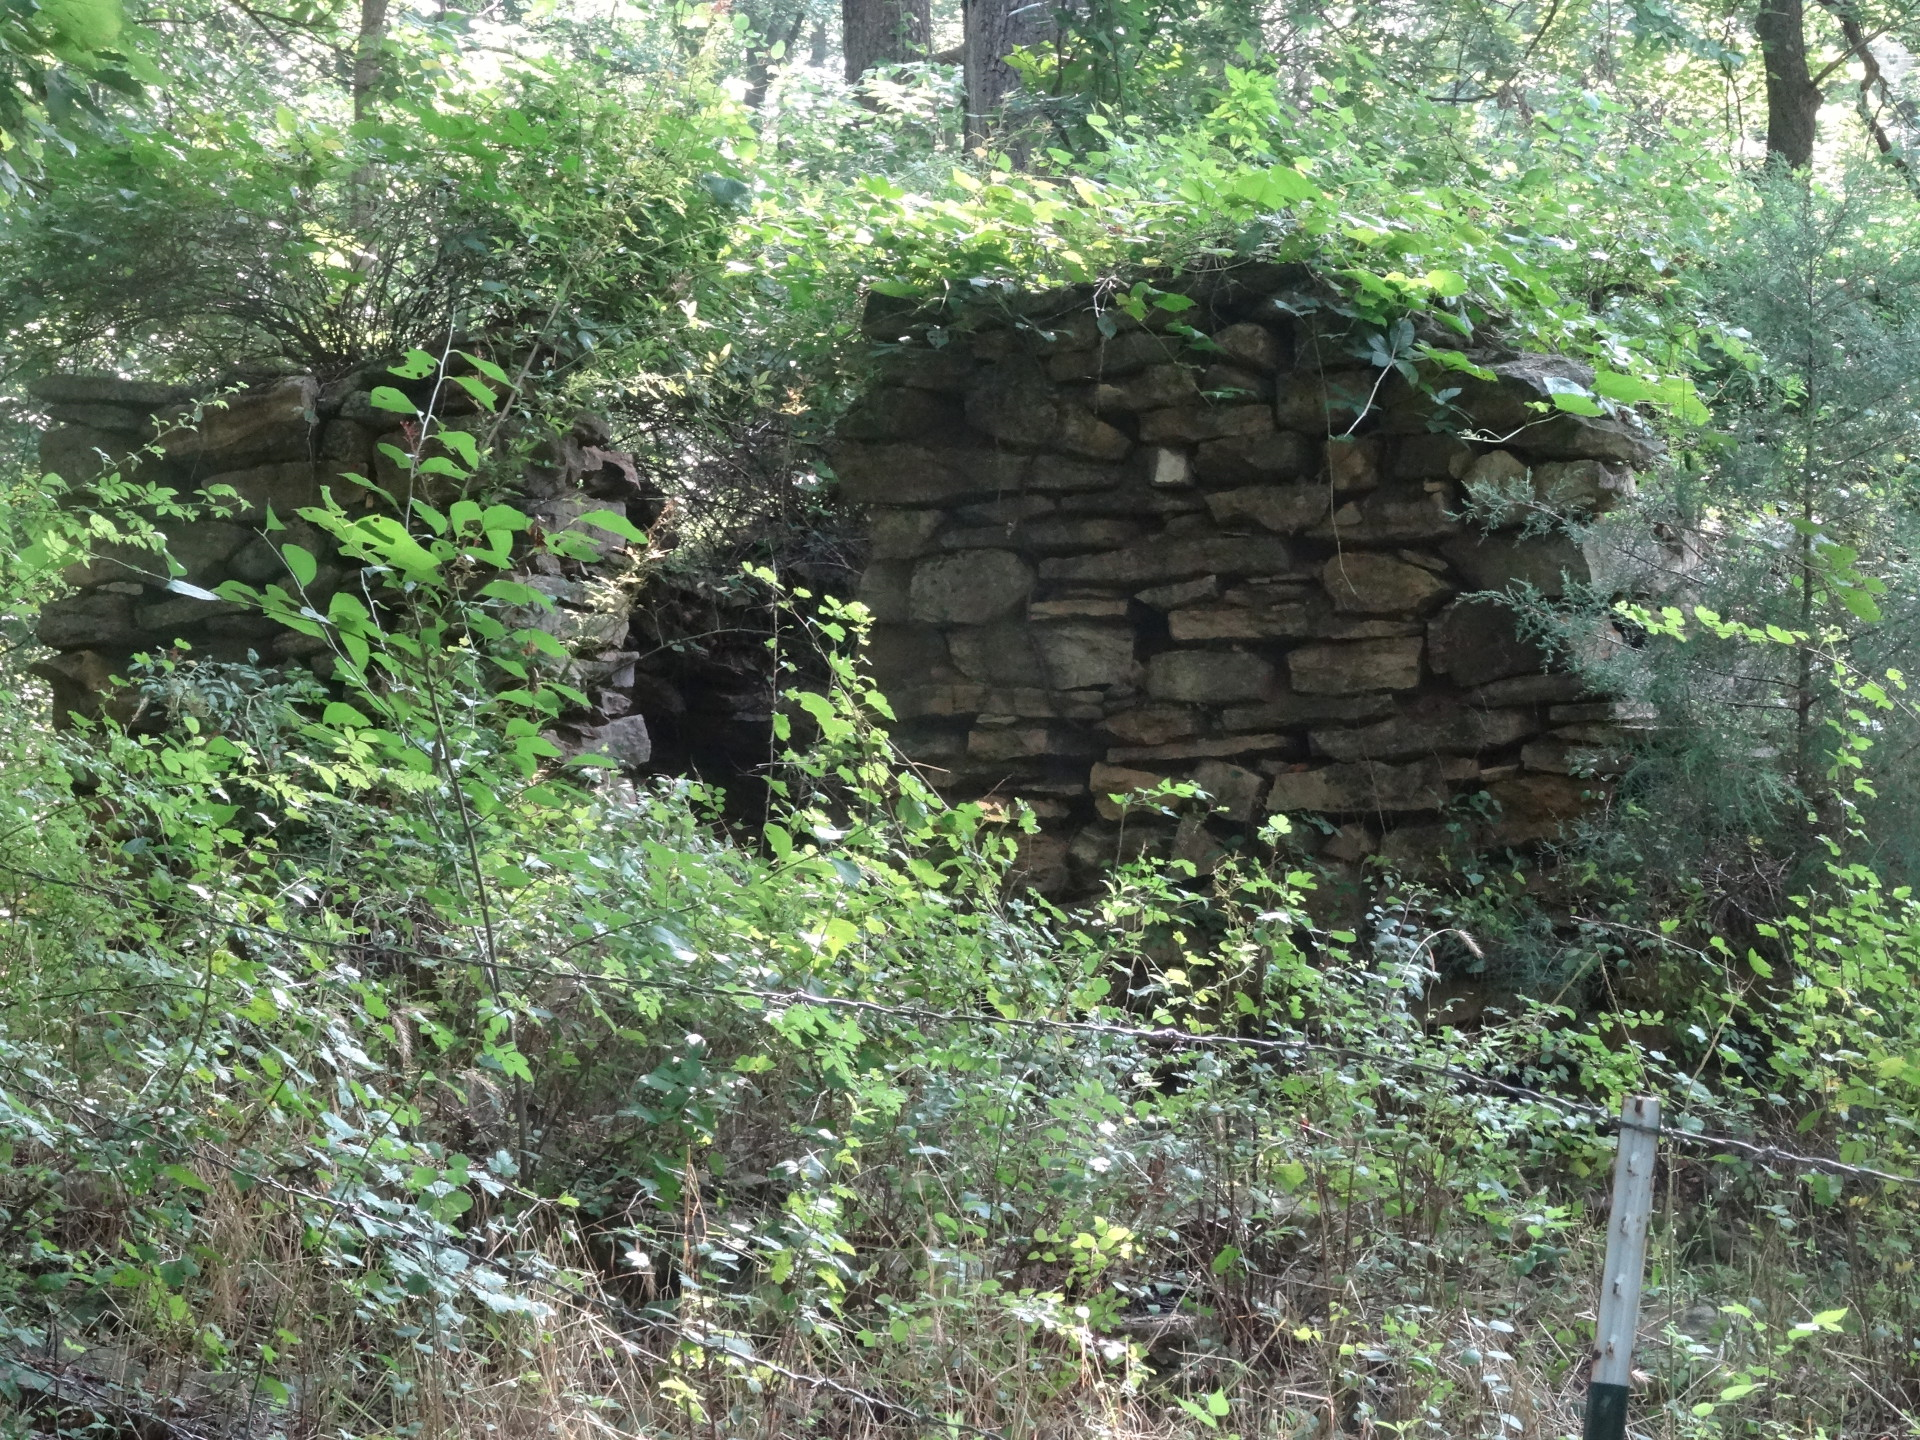 Old rock house on tree frog custom furniture property